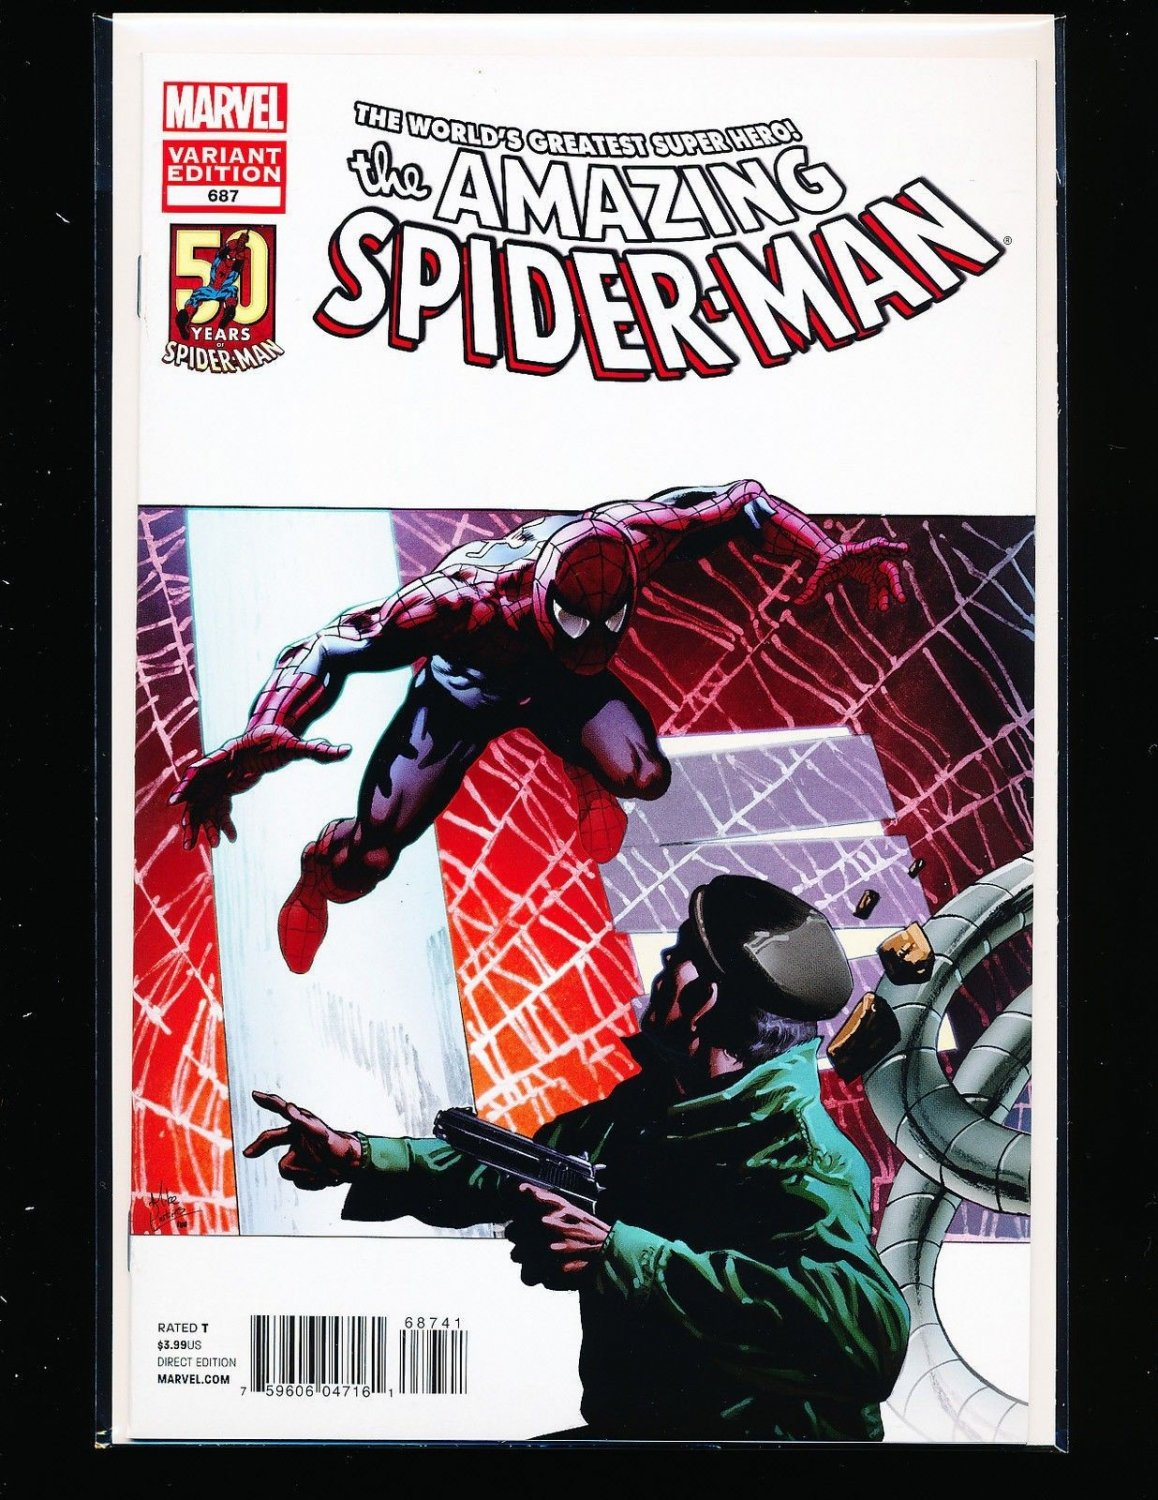 The Amazing Spider-Man #687